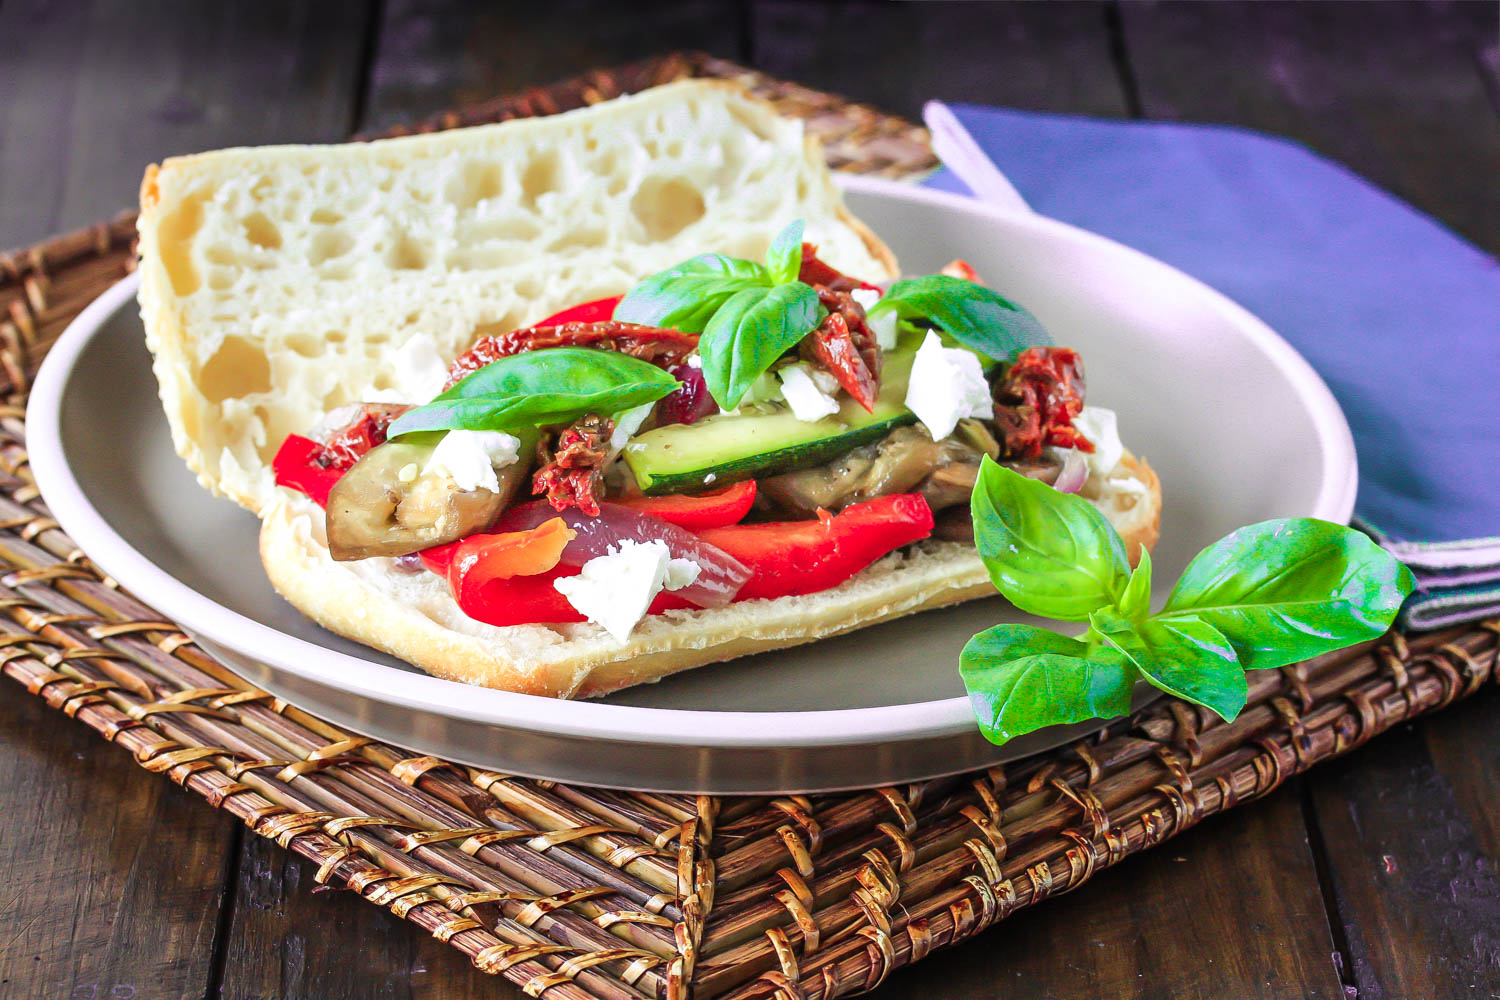 Roast vege sandwich with feta and sundried tomatoes